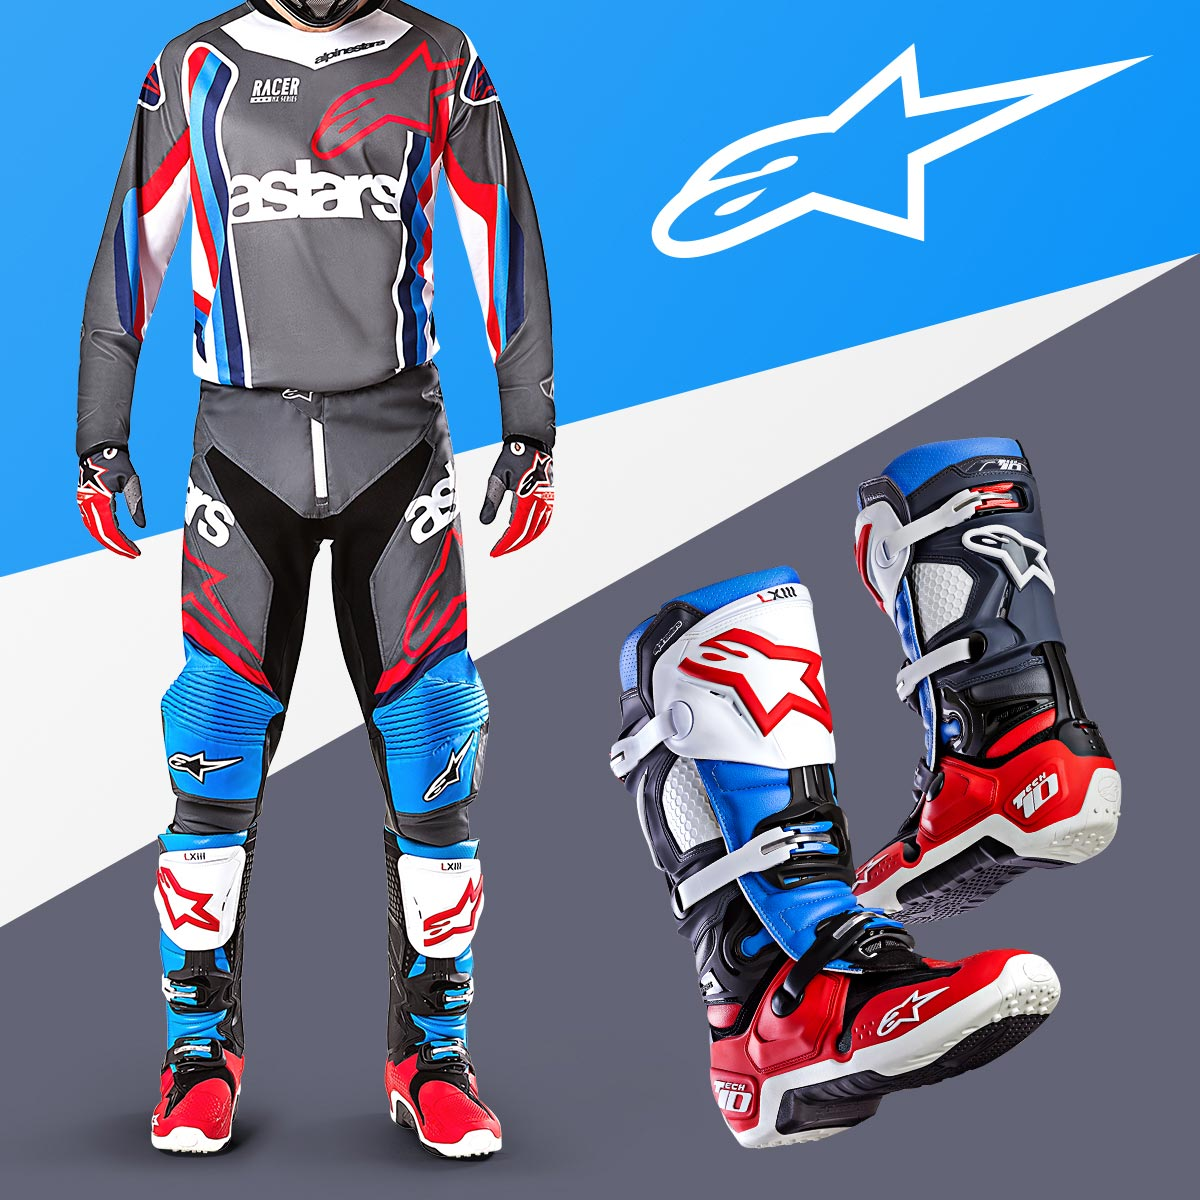 Alpinestars Limited Edition Bomber Gear and Tech 10 Boots